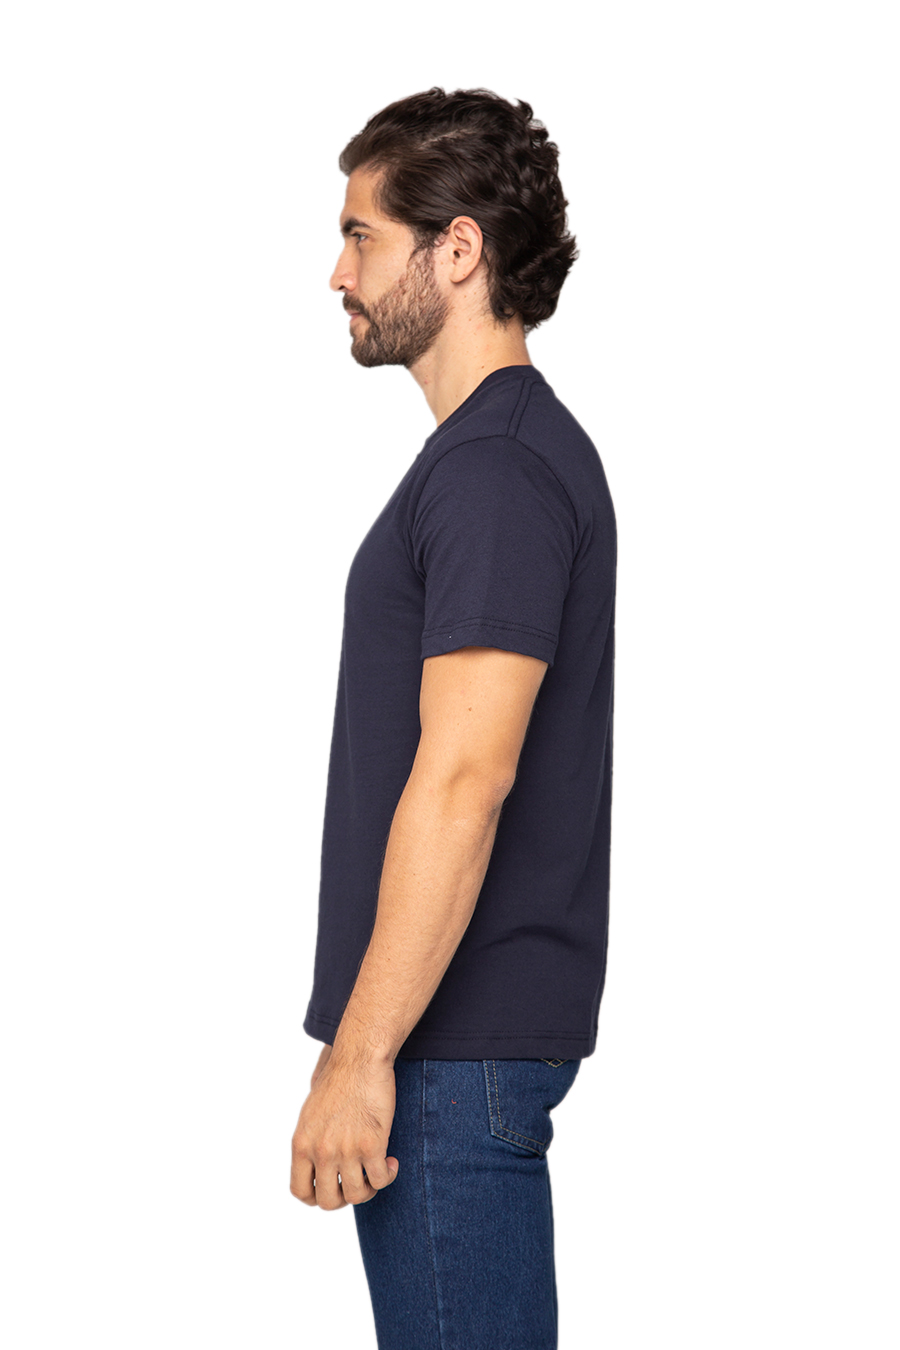 Camiseta Mod. 1 Color Azul Navy